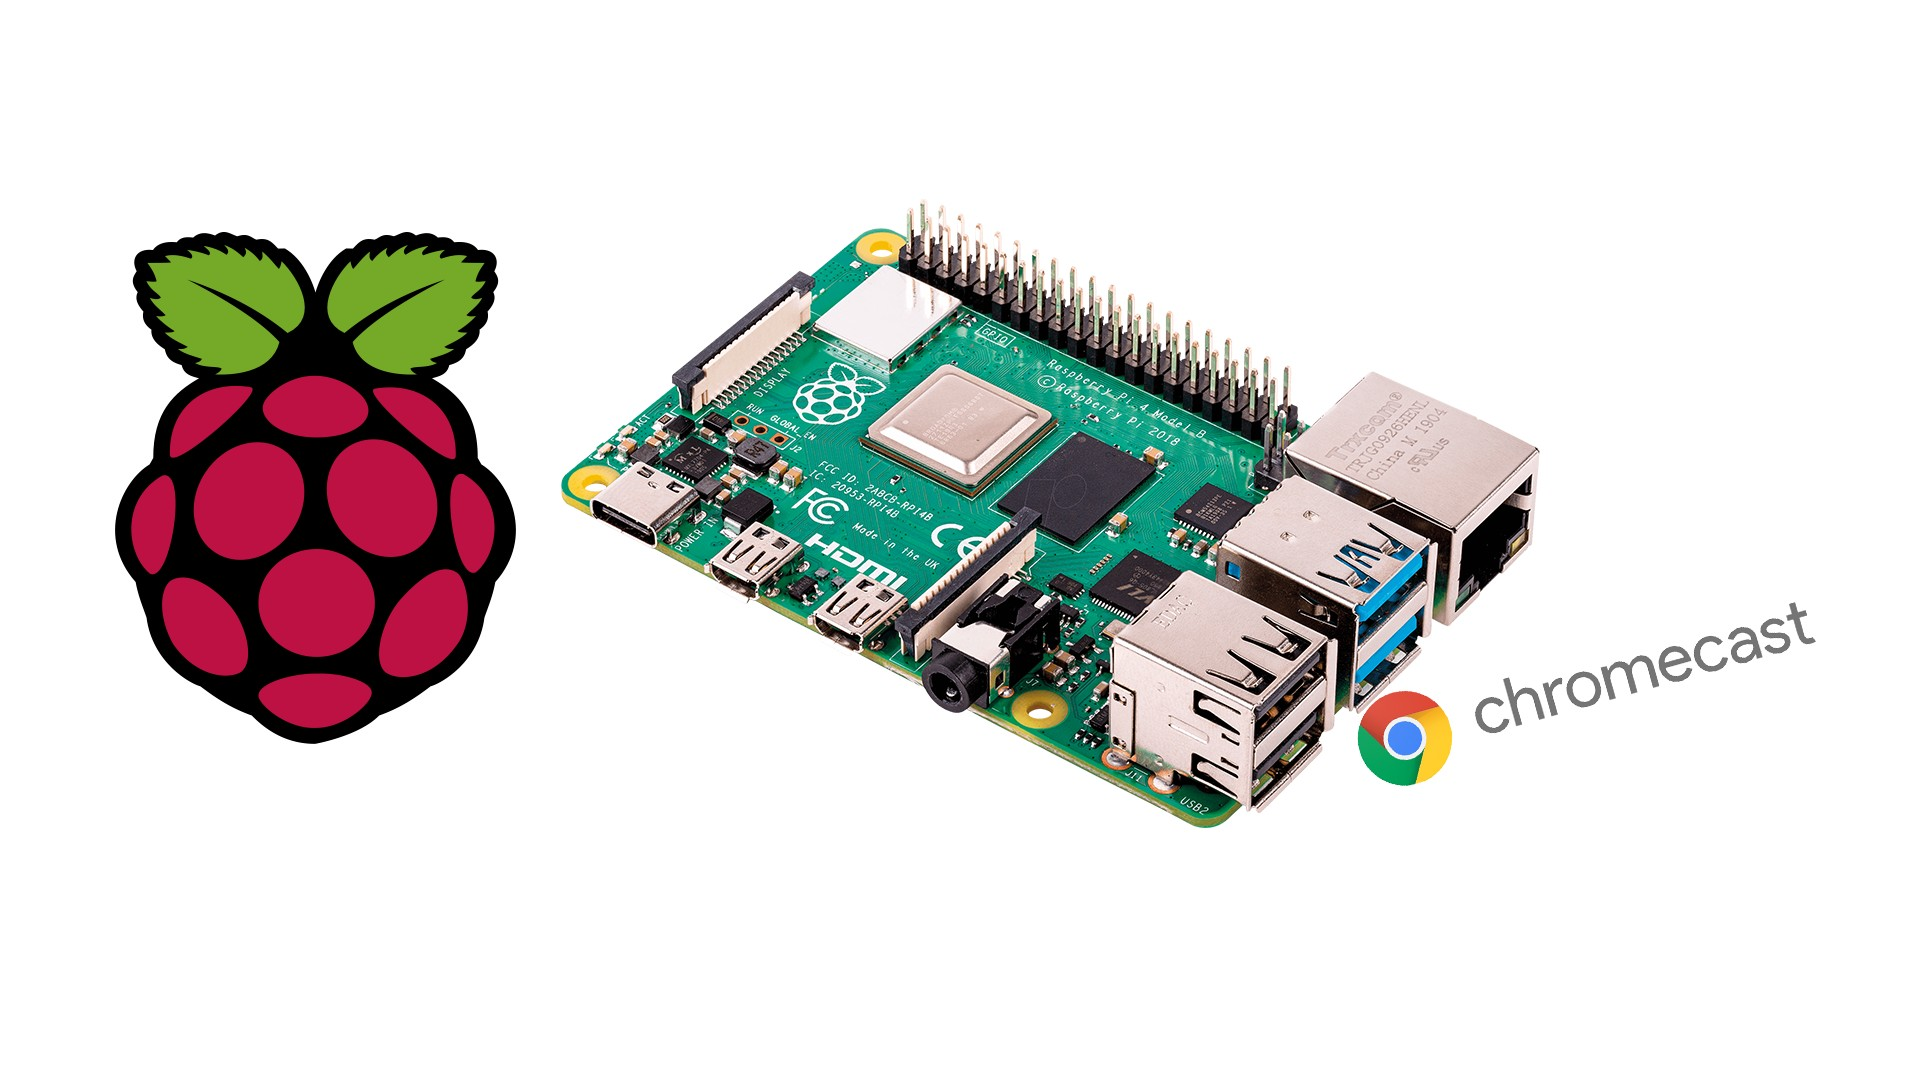 Transformer un Raspberry Pi en Chromecast bientôt possible !